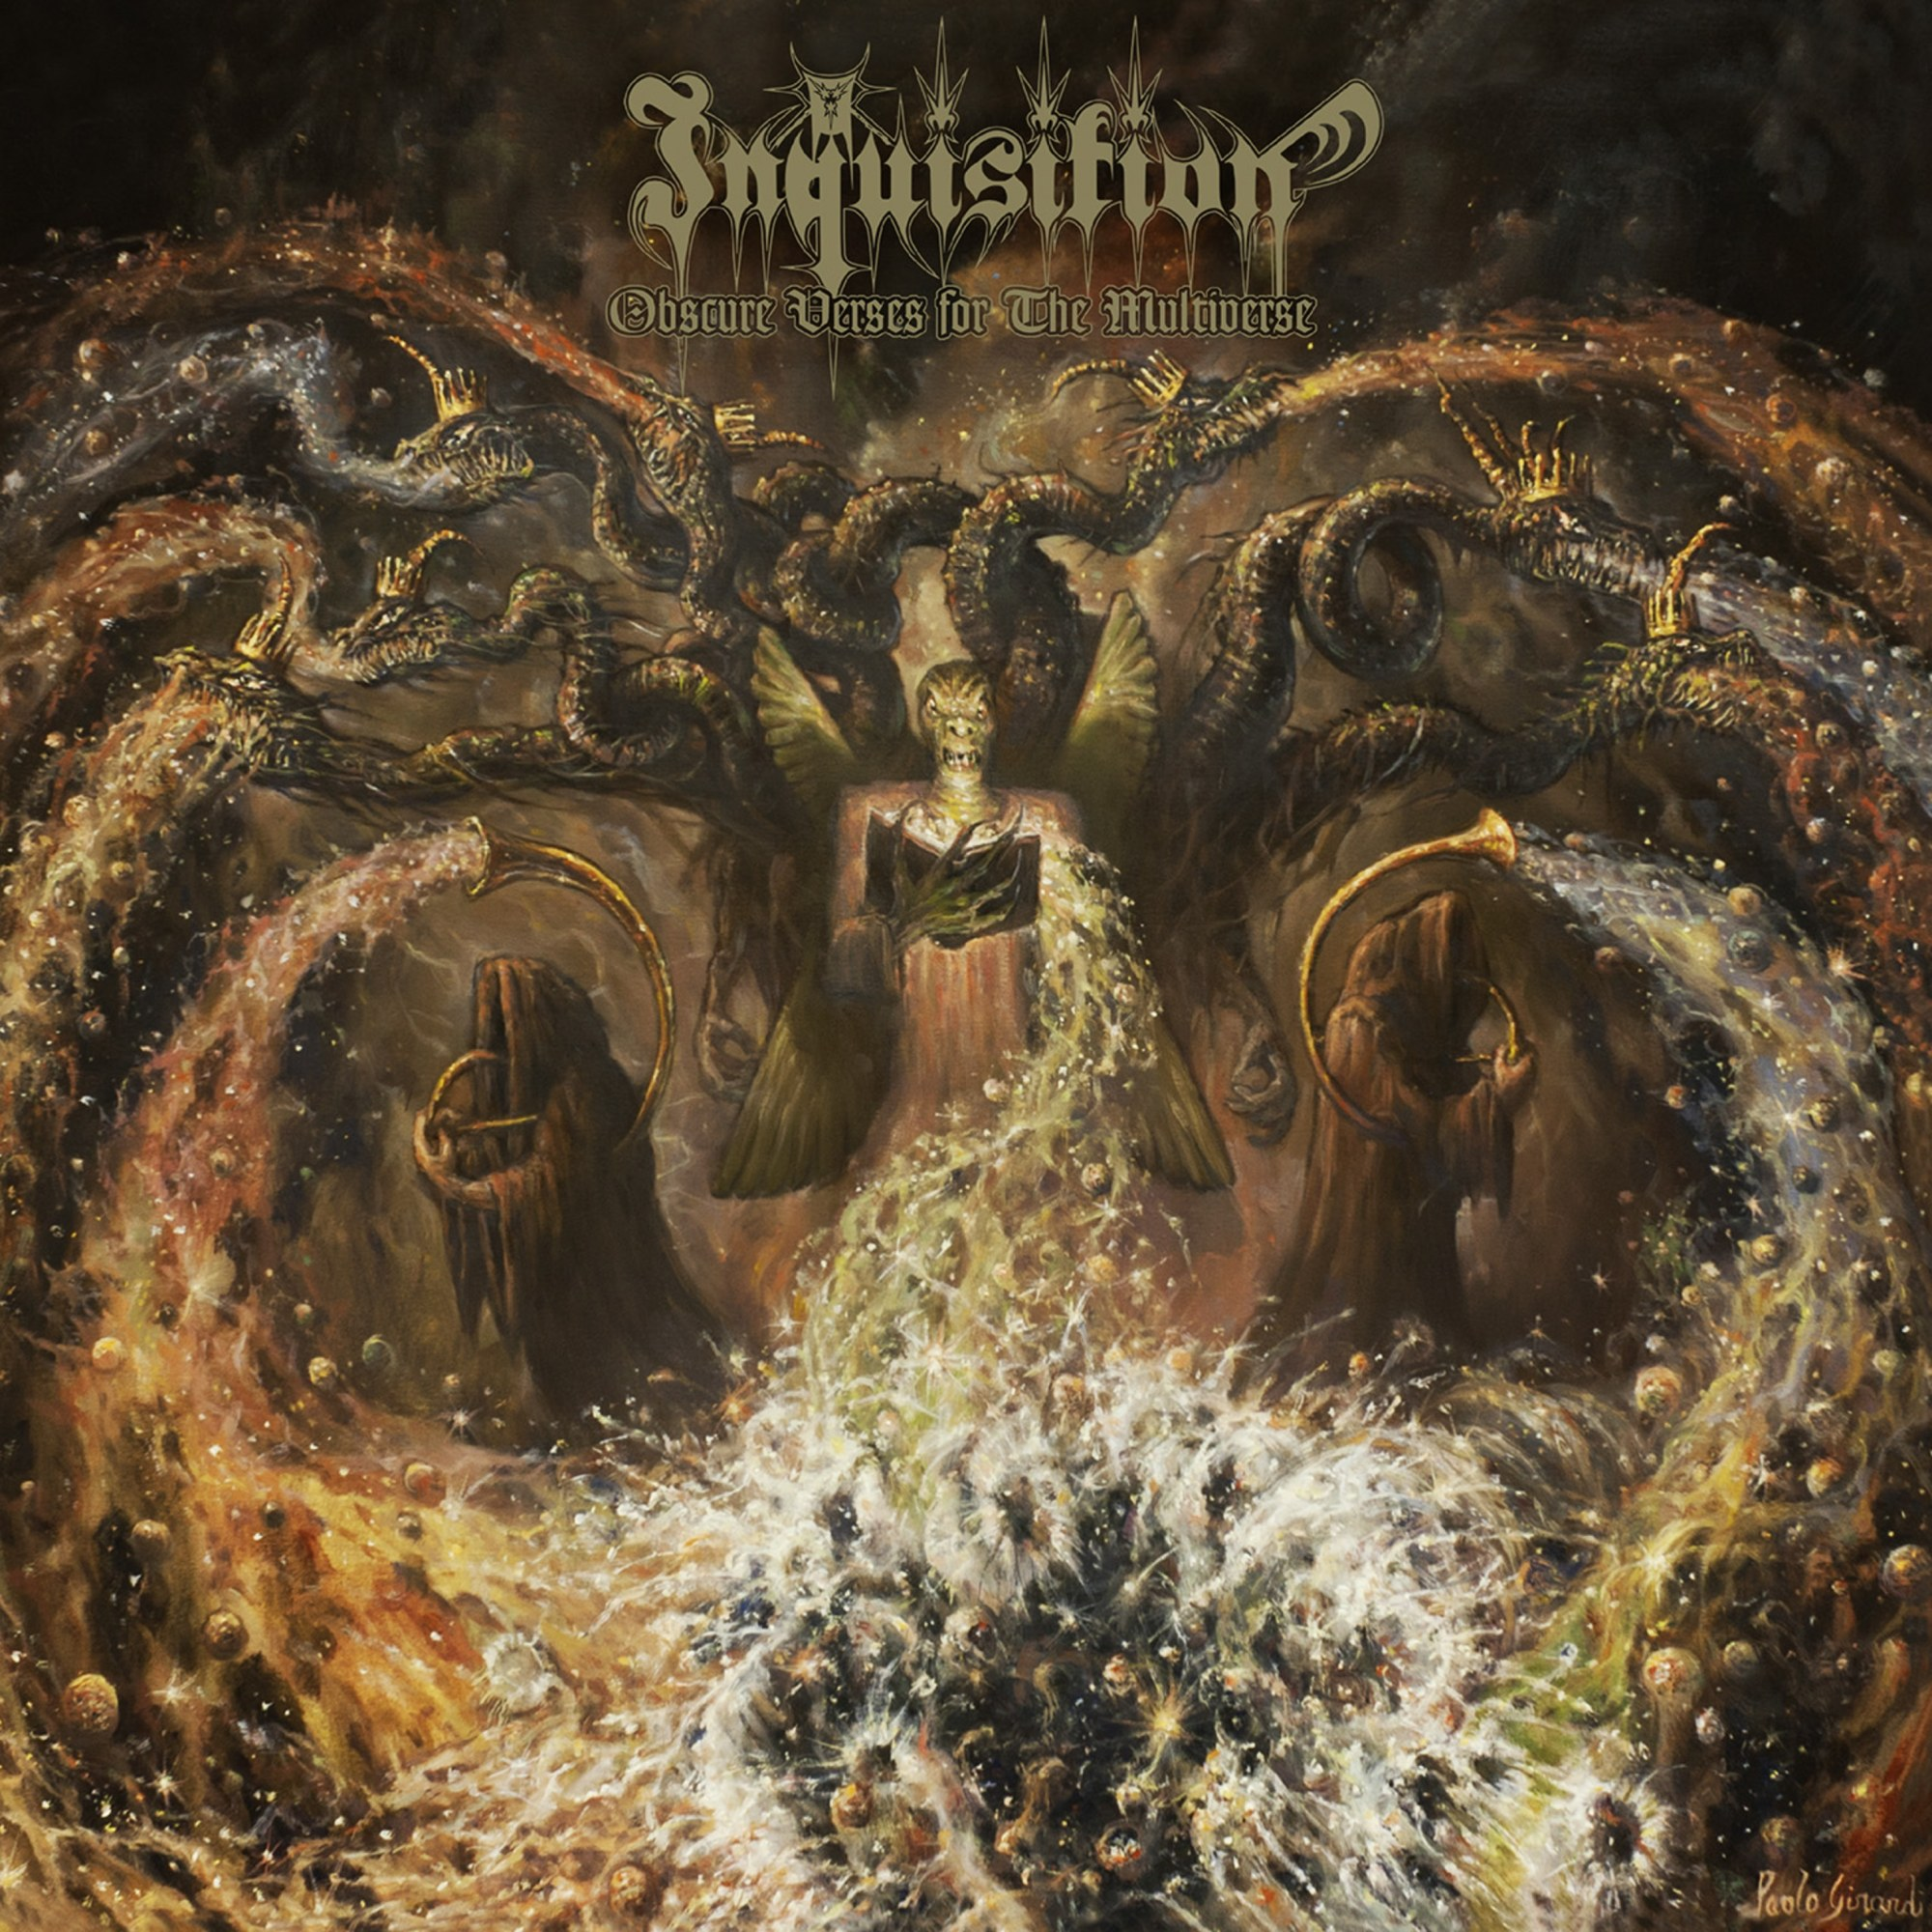 Review for Inquisition - Obscure Verses for the Multiverse